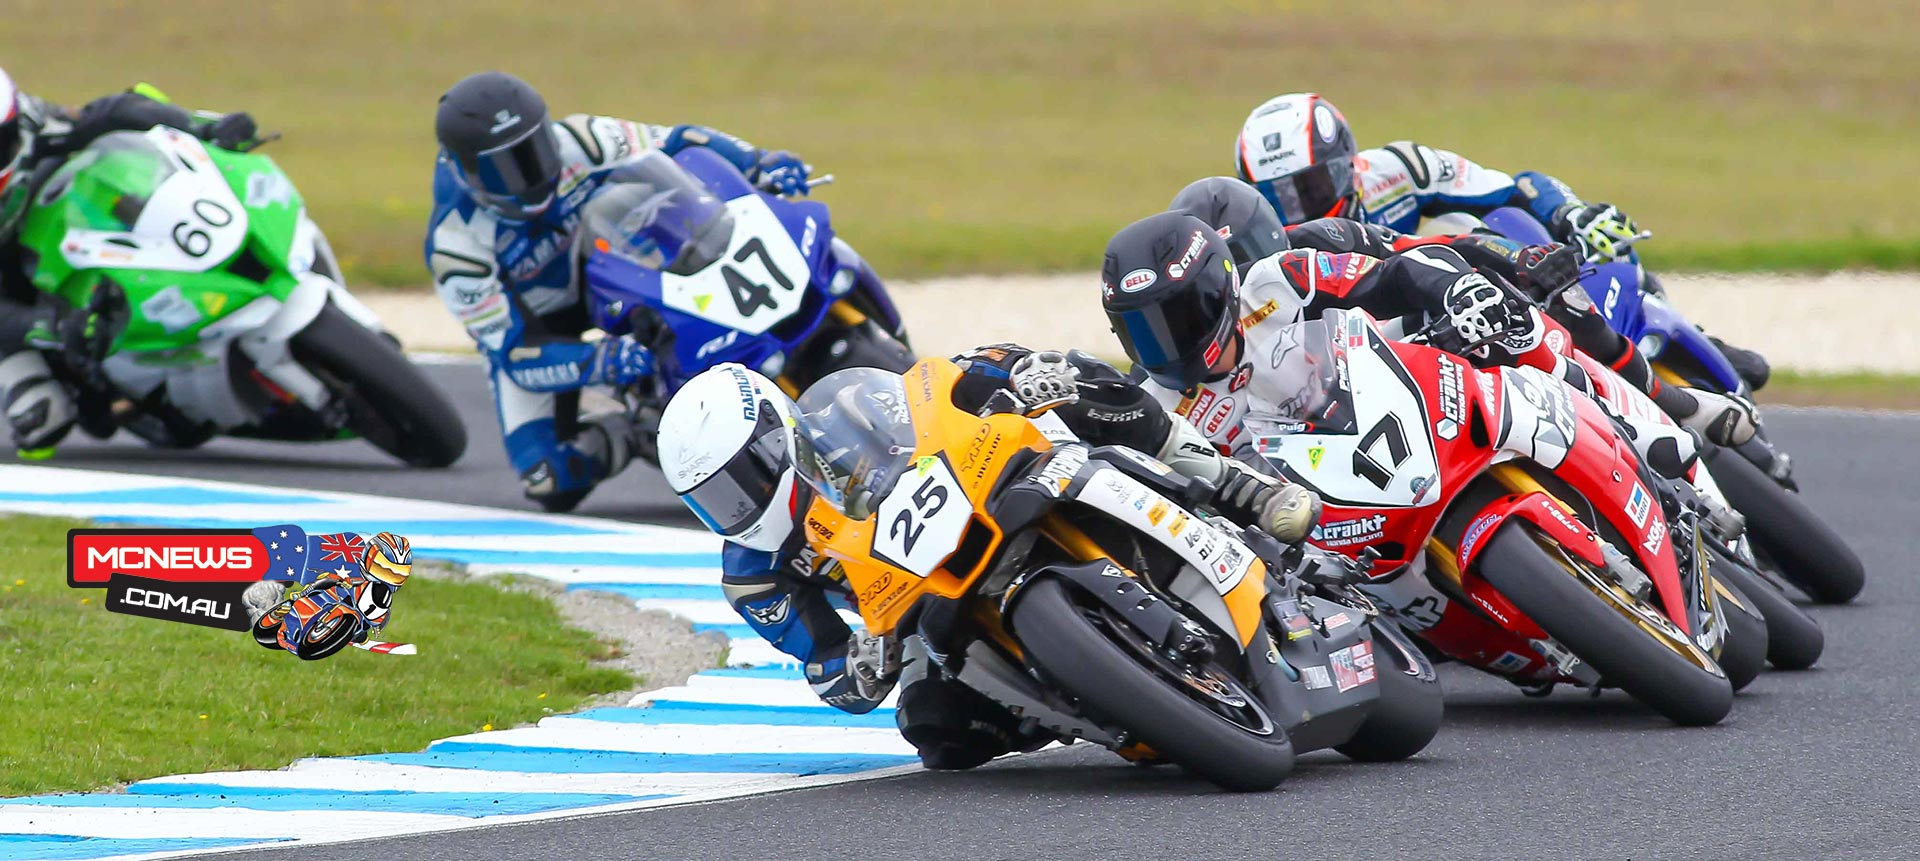 ASBK 2016 - Round One - Image by Cameron White